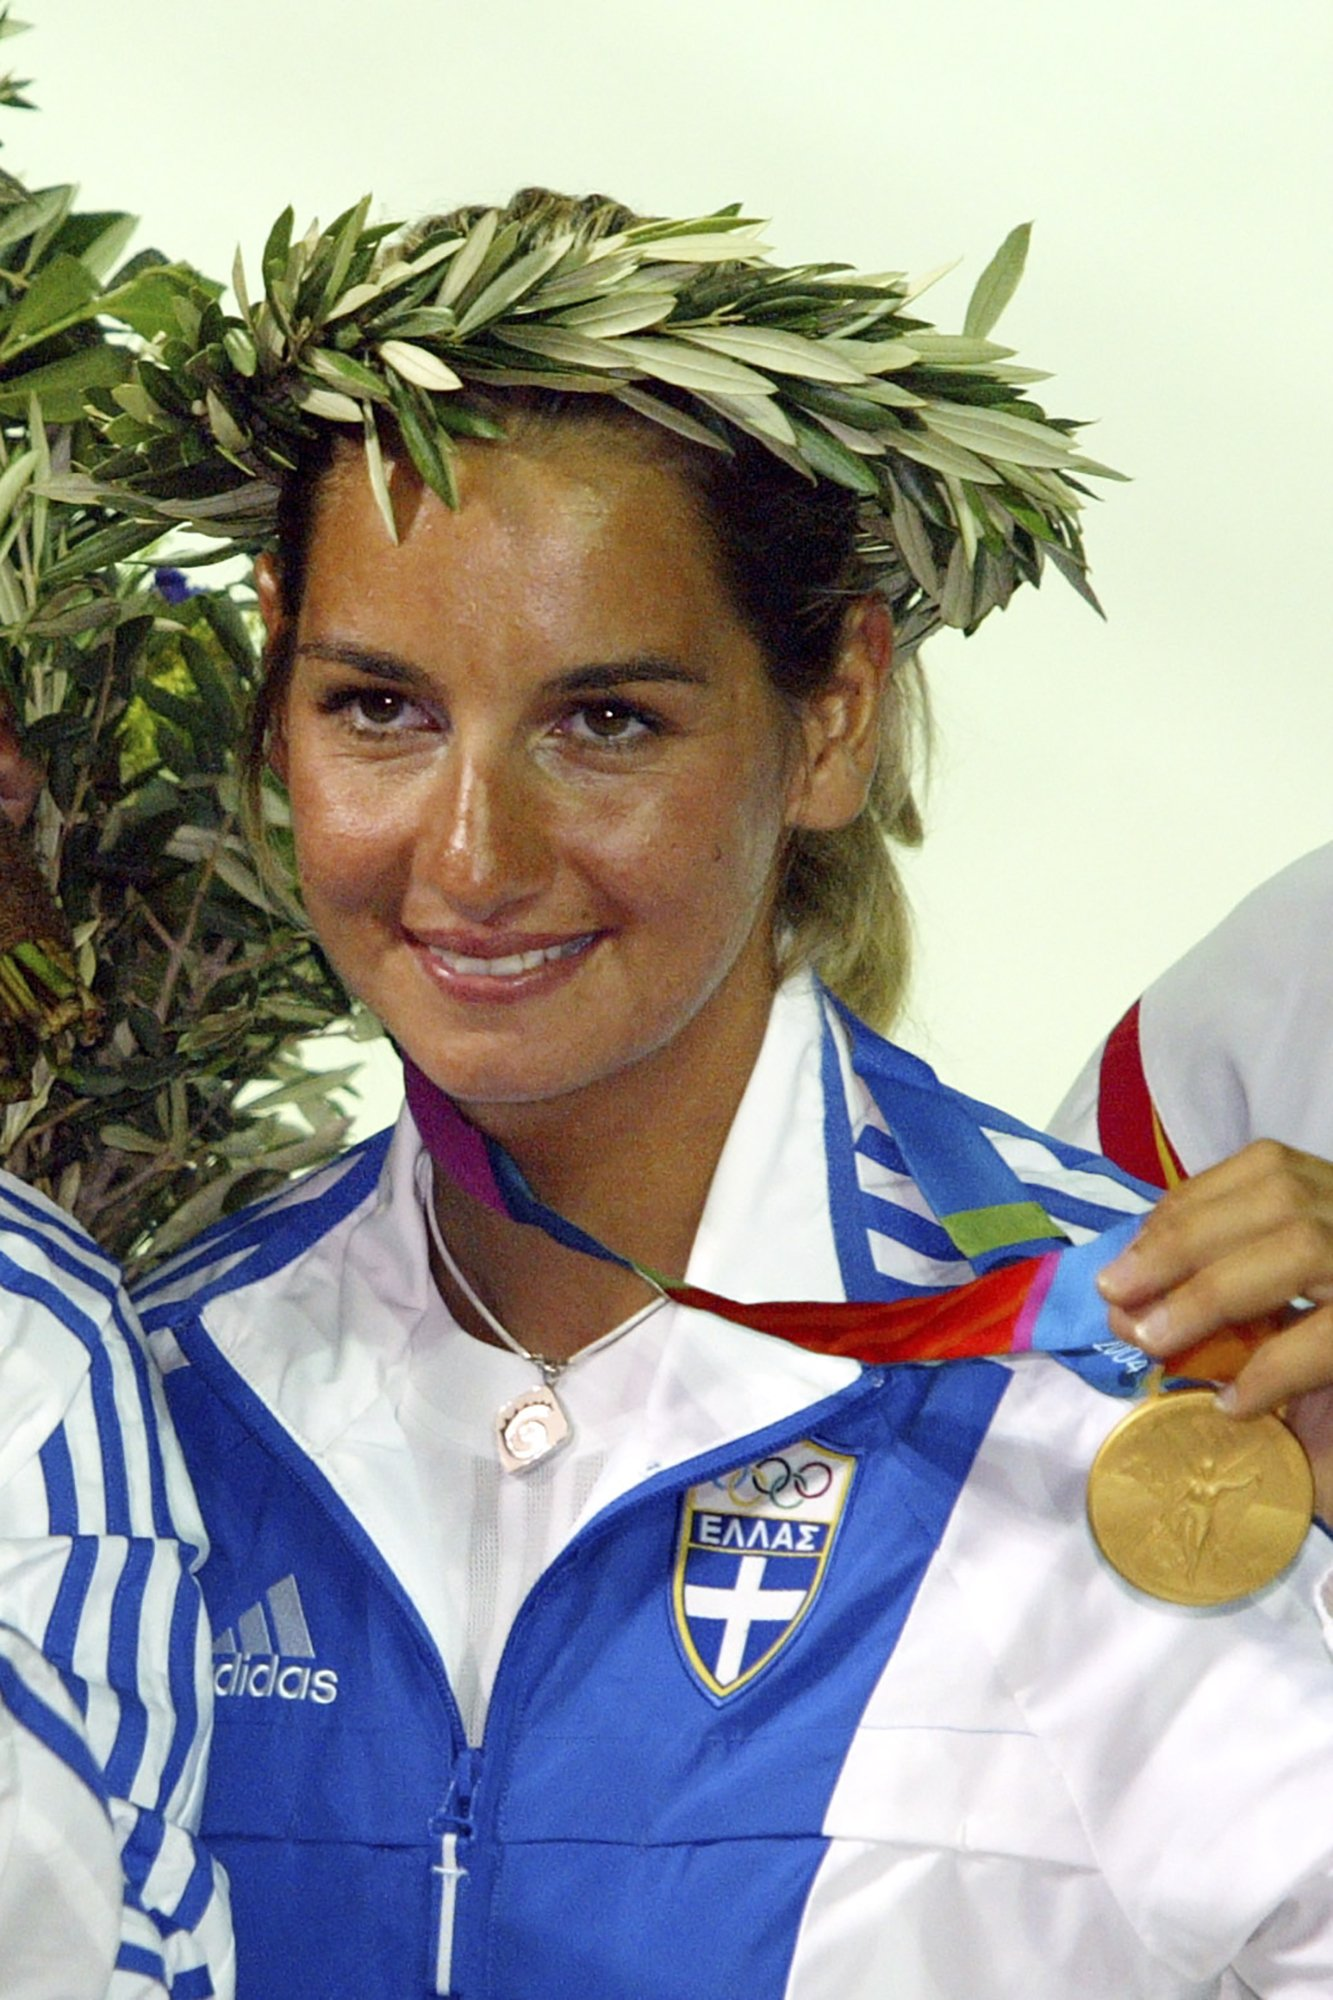 Olympic sailing champ says she was assaulted by official